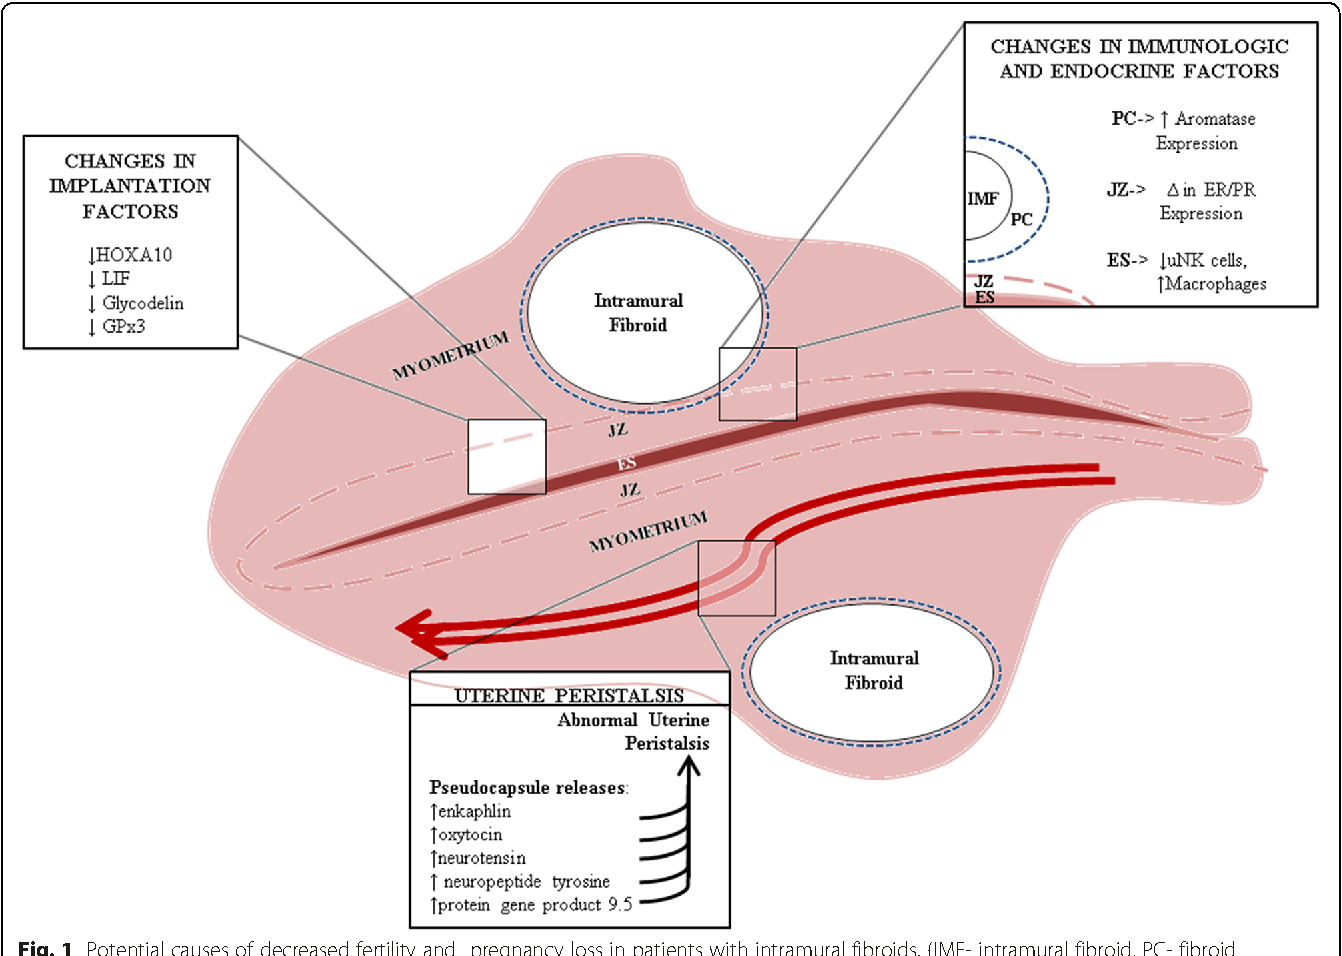 Figure 1 from Potential causes of subfertility in patients with